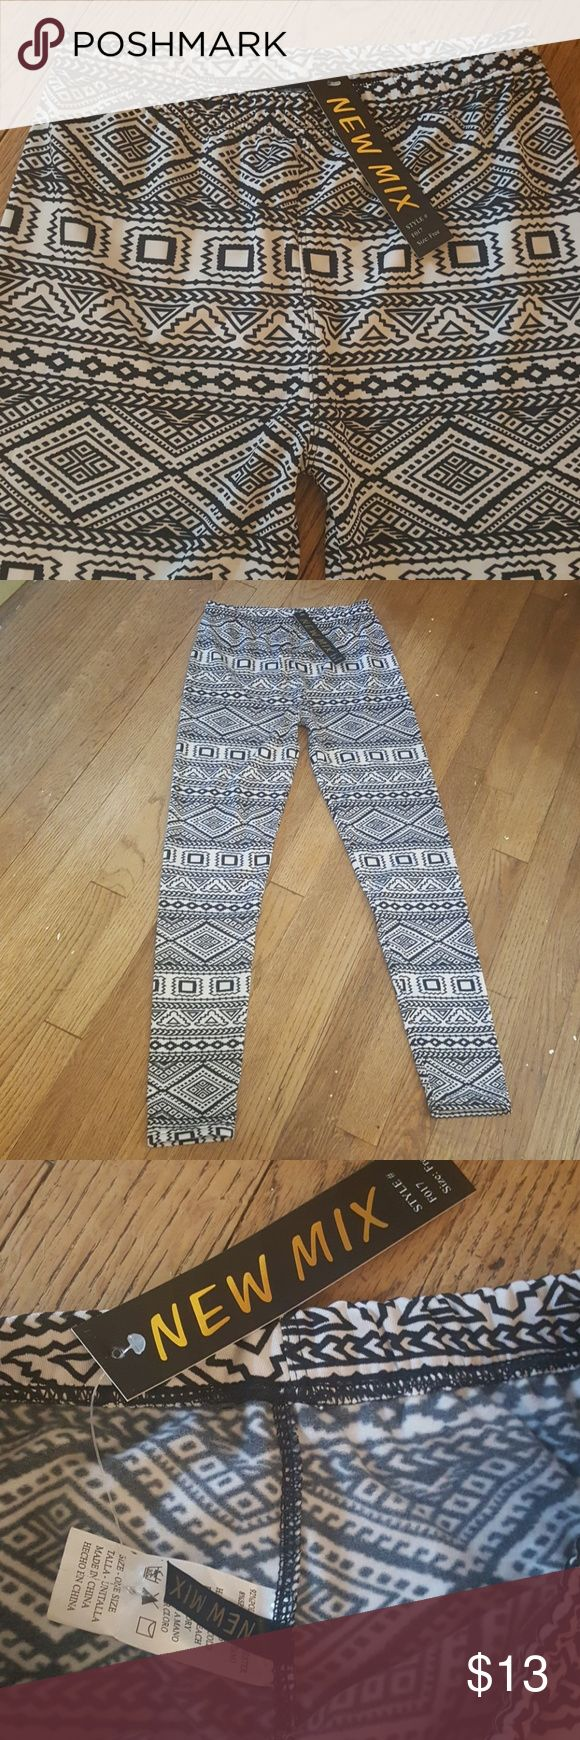 NWT black and white Aztec print leggings Super soft leggings sold by Three Bird Nest that say they are one size but I would say they are small because I normally wear a medium but couldn't get these over my backside. They have a silky feeling on the outside and very soft fleece on the inside, but they have really no stretch at all. Three Bird Nest Pants Leggings